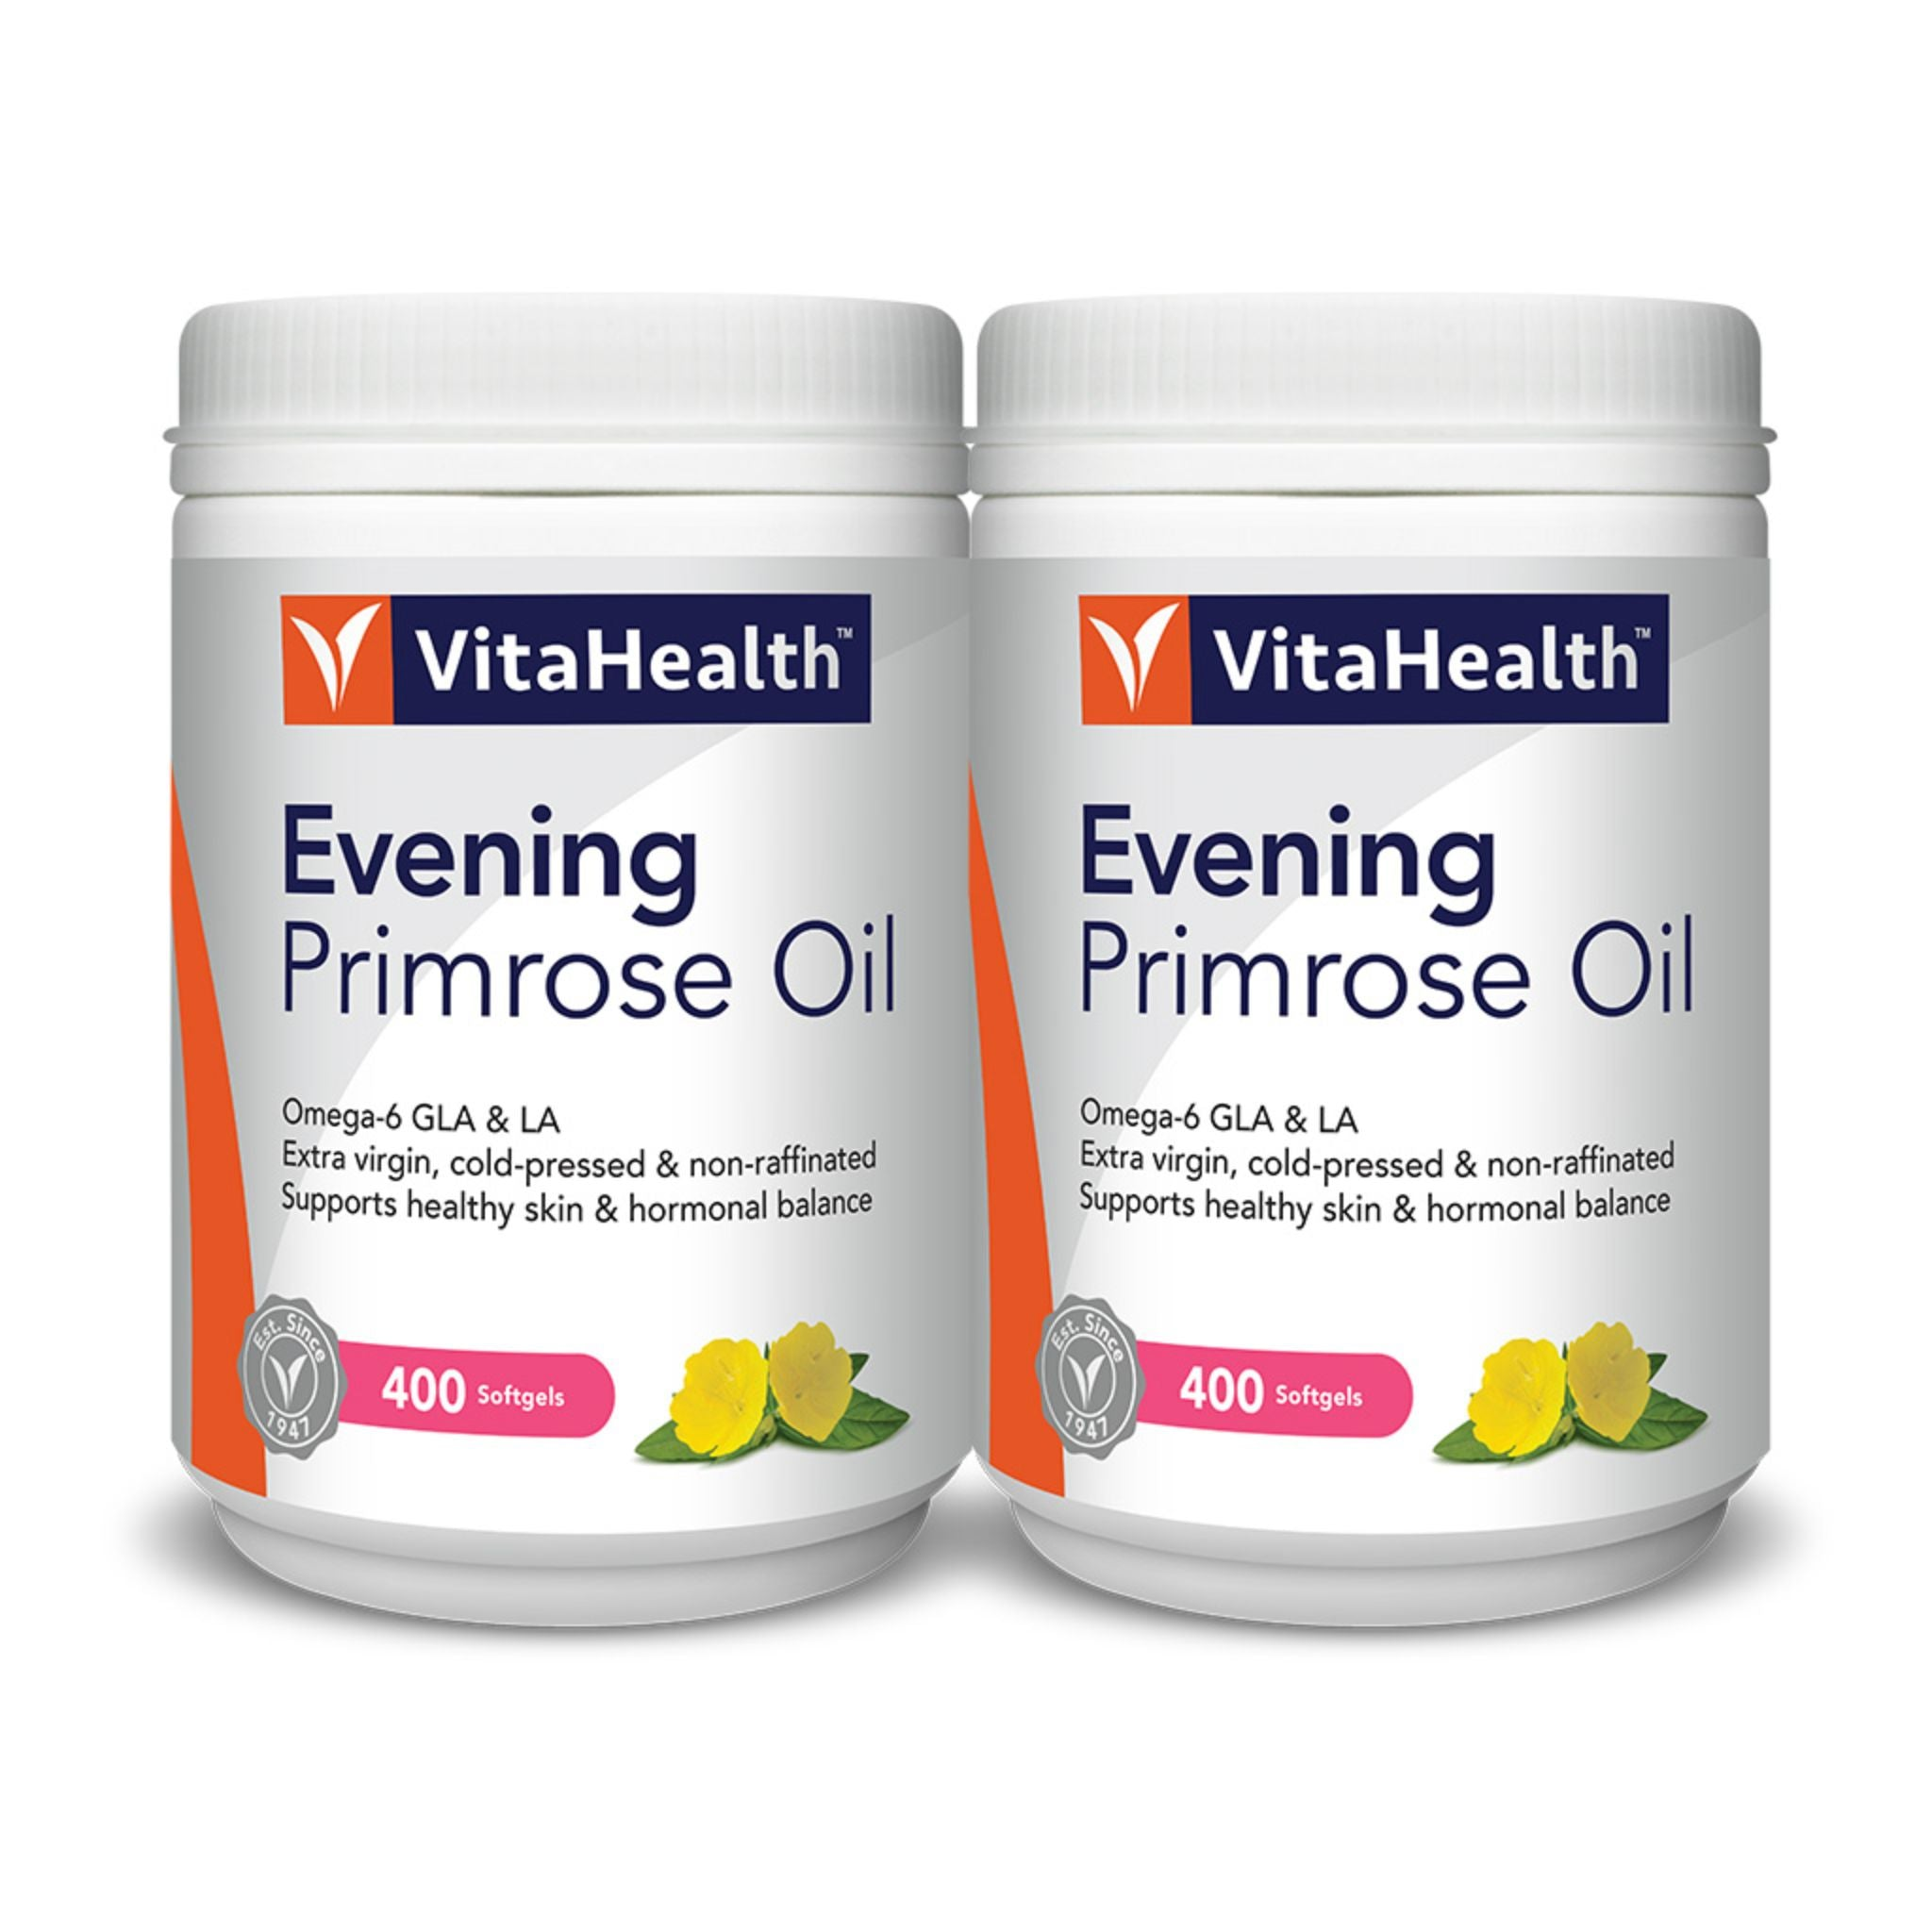 VitaHealth Evening Primerose Oil (Twin Pack)